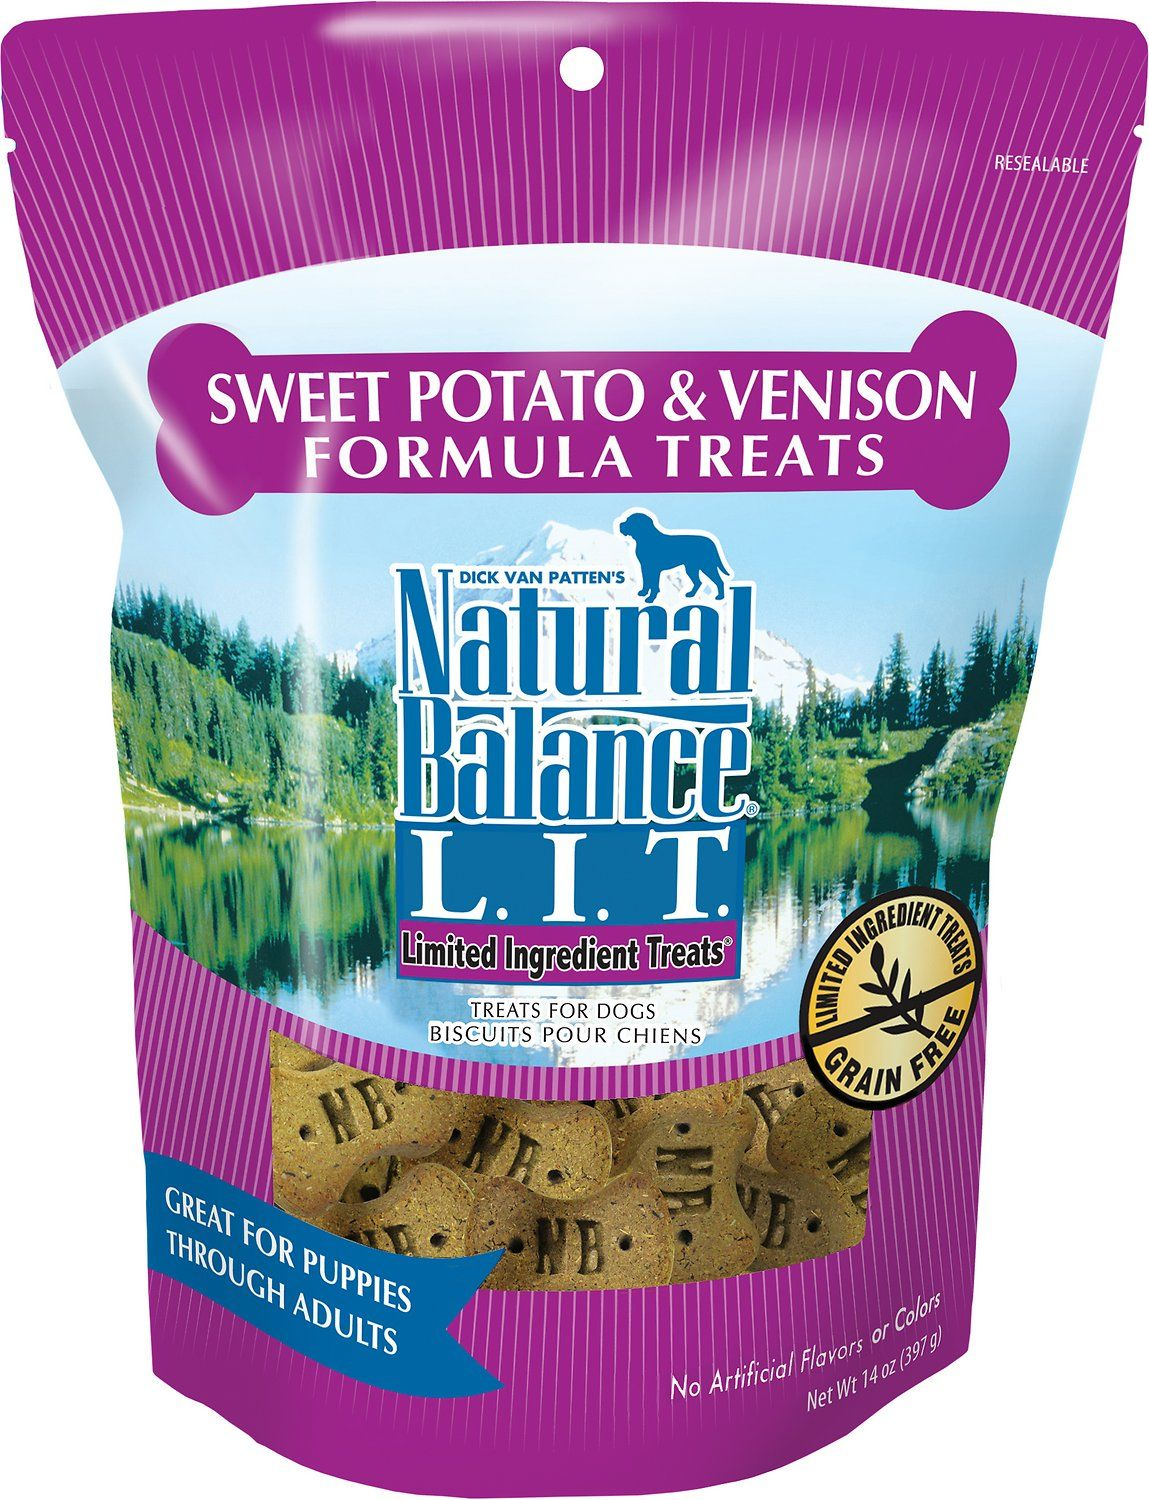 Limited Ingredient Treats are designed with a limited